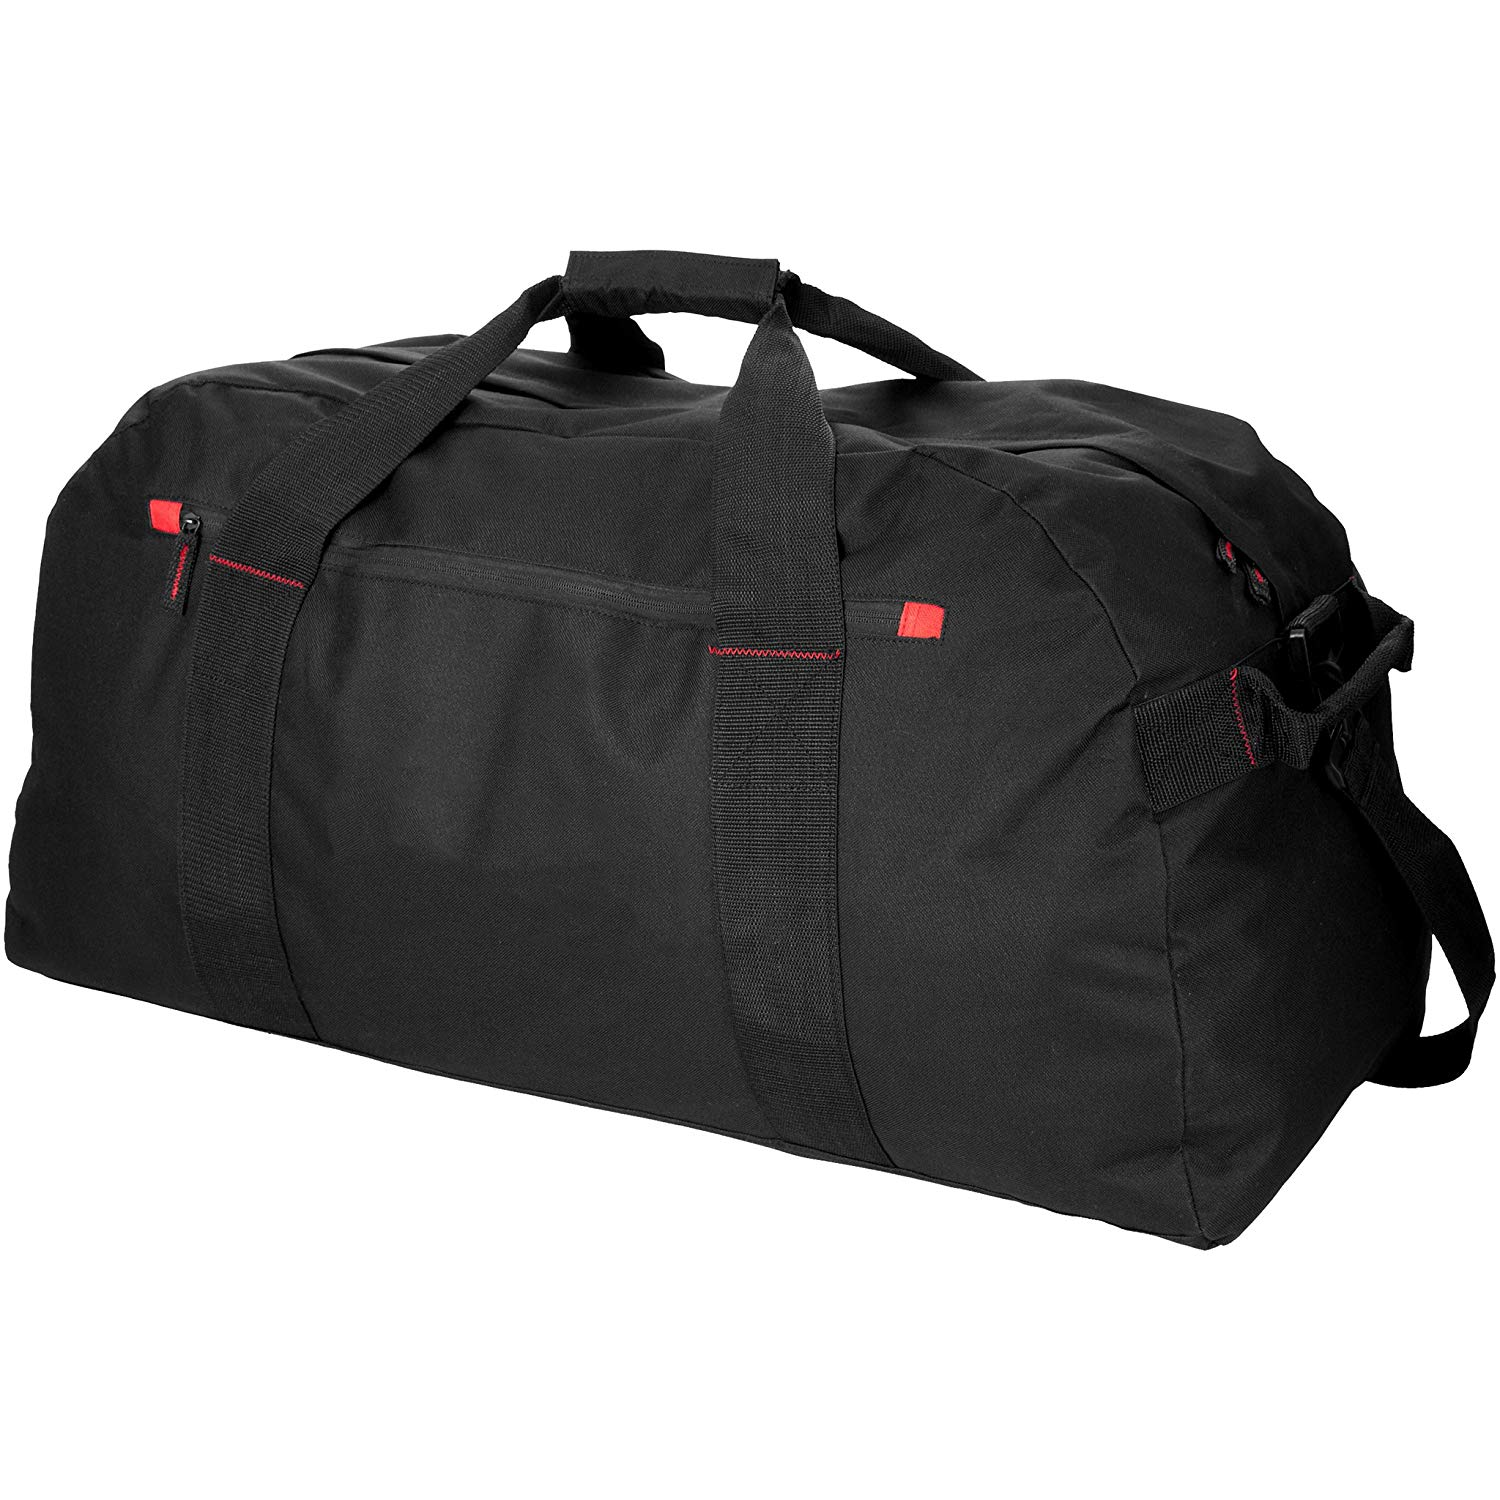 Bullet Vancouver Extra Large Travel Bag